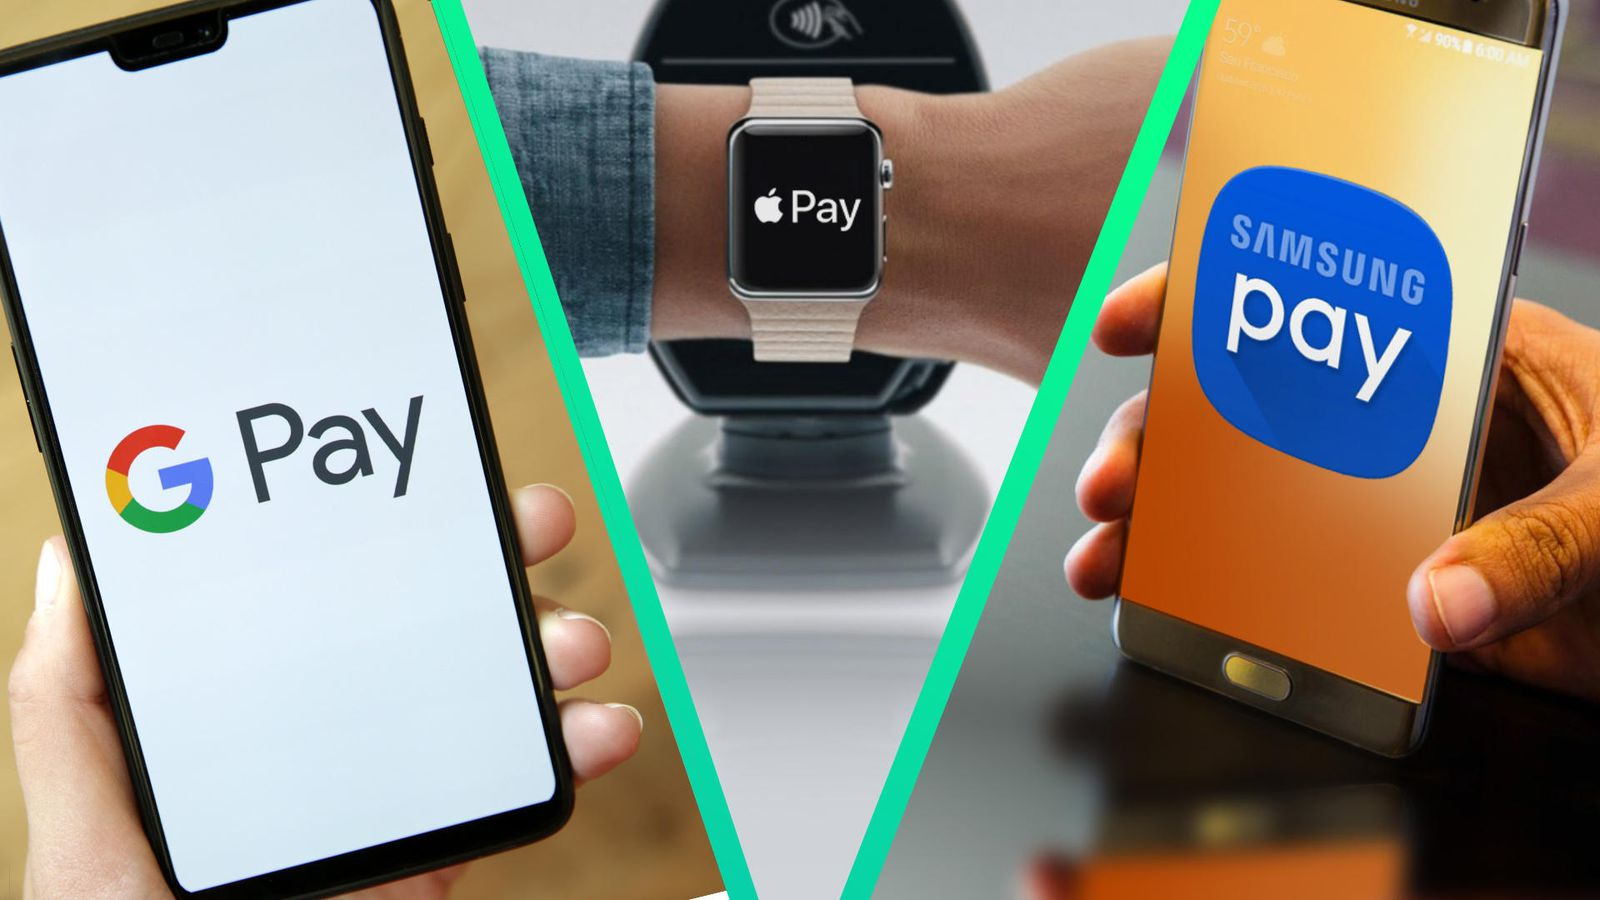 How to add card to apple pay on iphone x